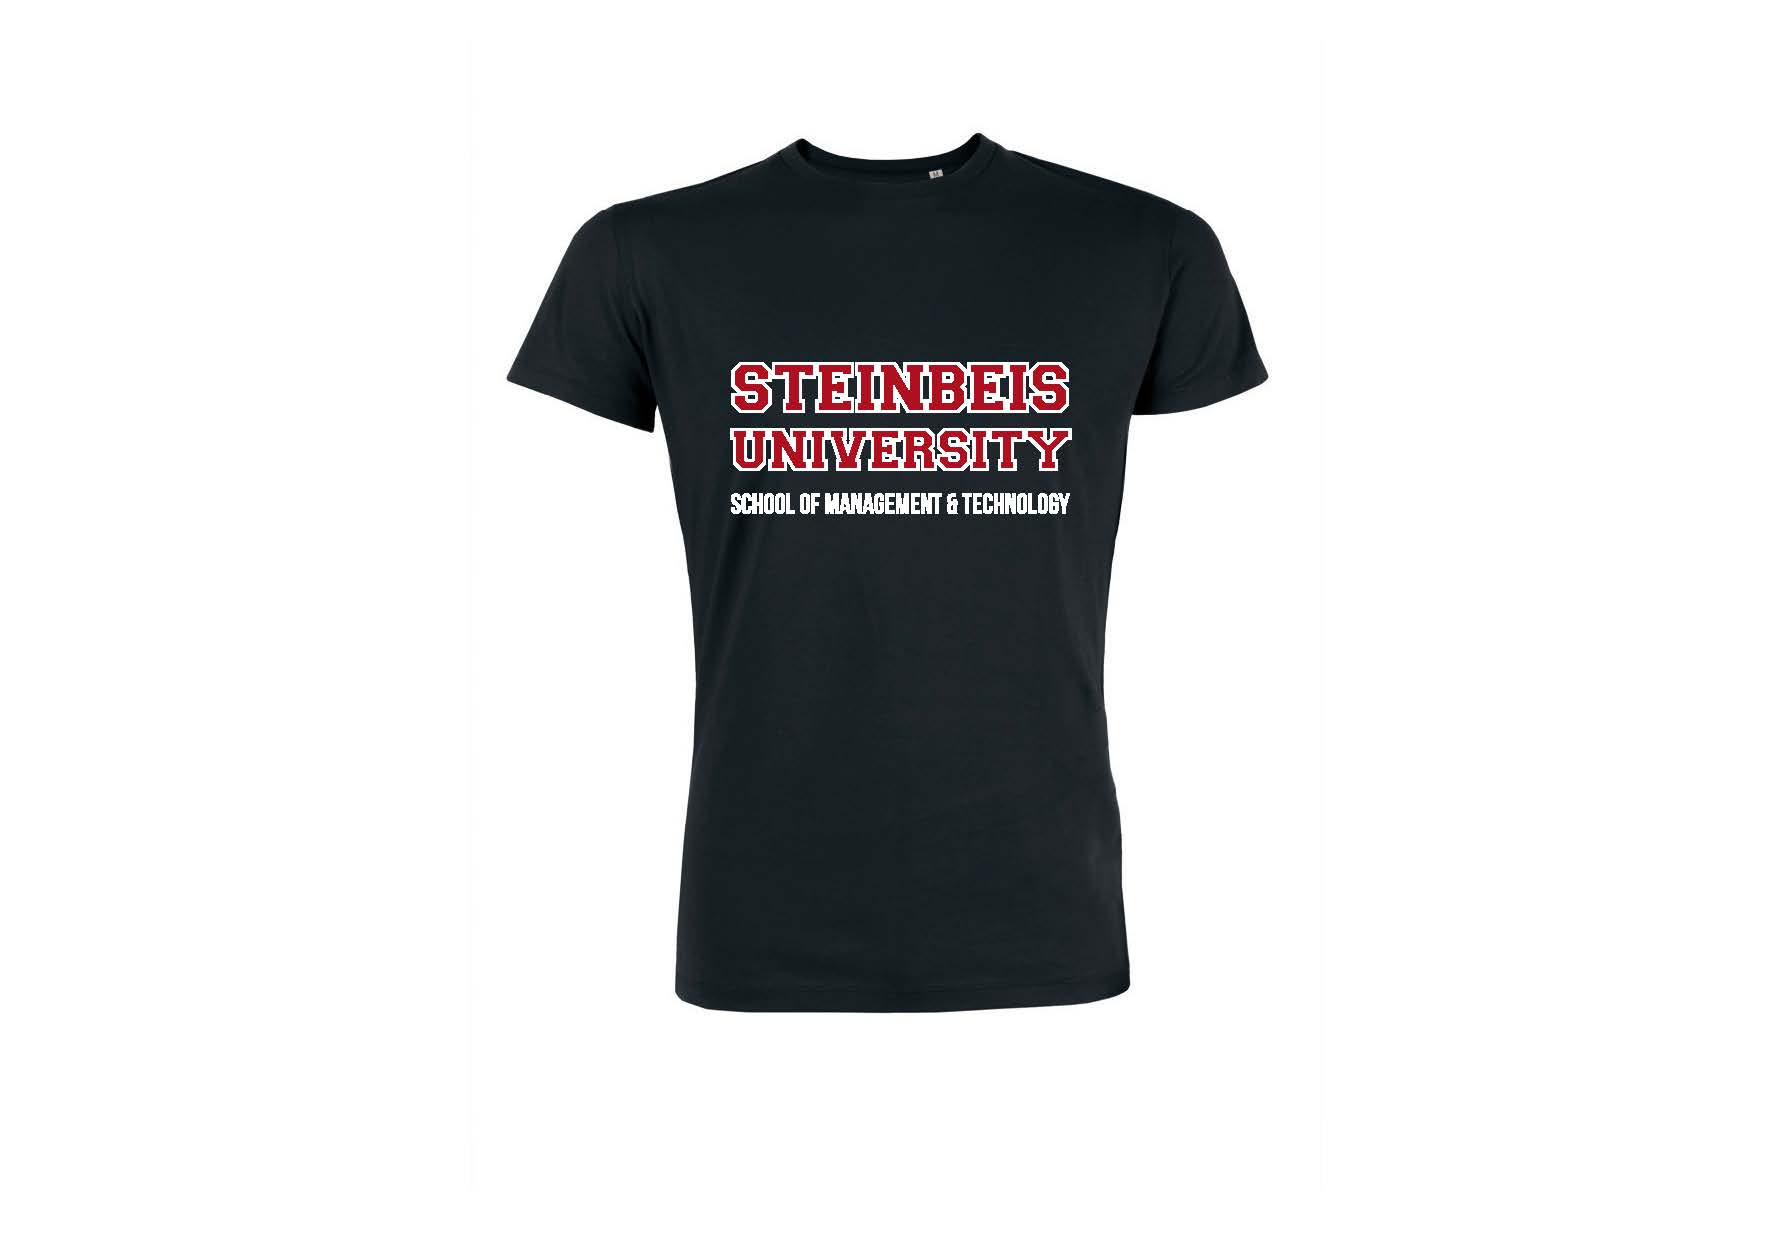 Tshirt, Steinbeis University, SMT, SCMT, Merch Shop, Online Shop, Rabattaktion